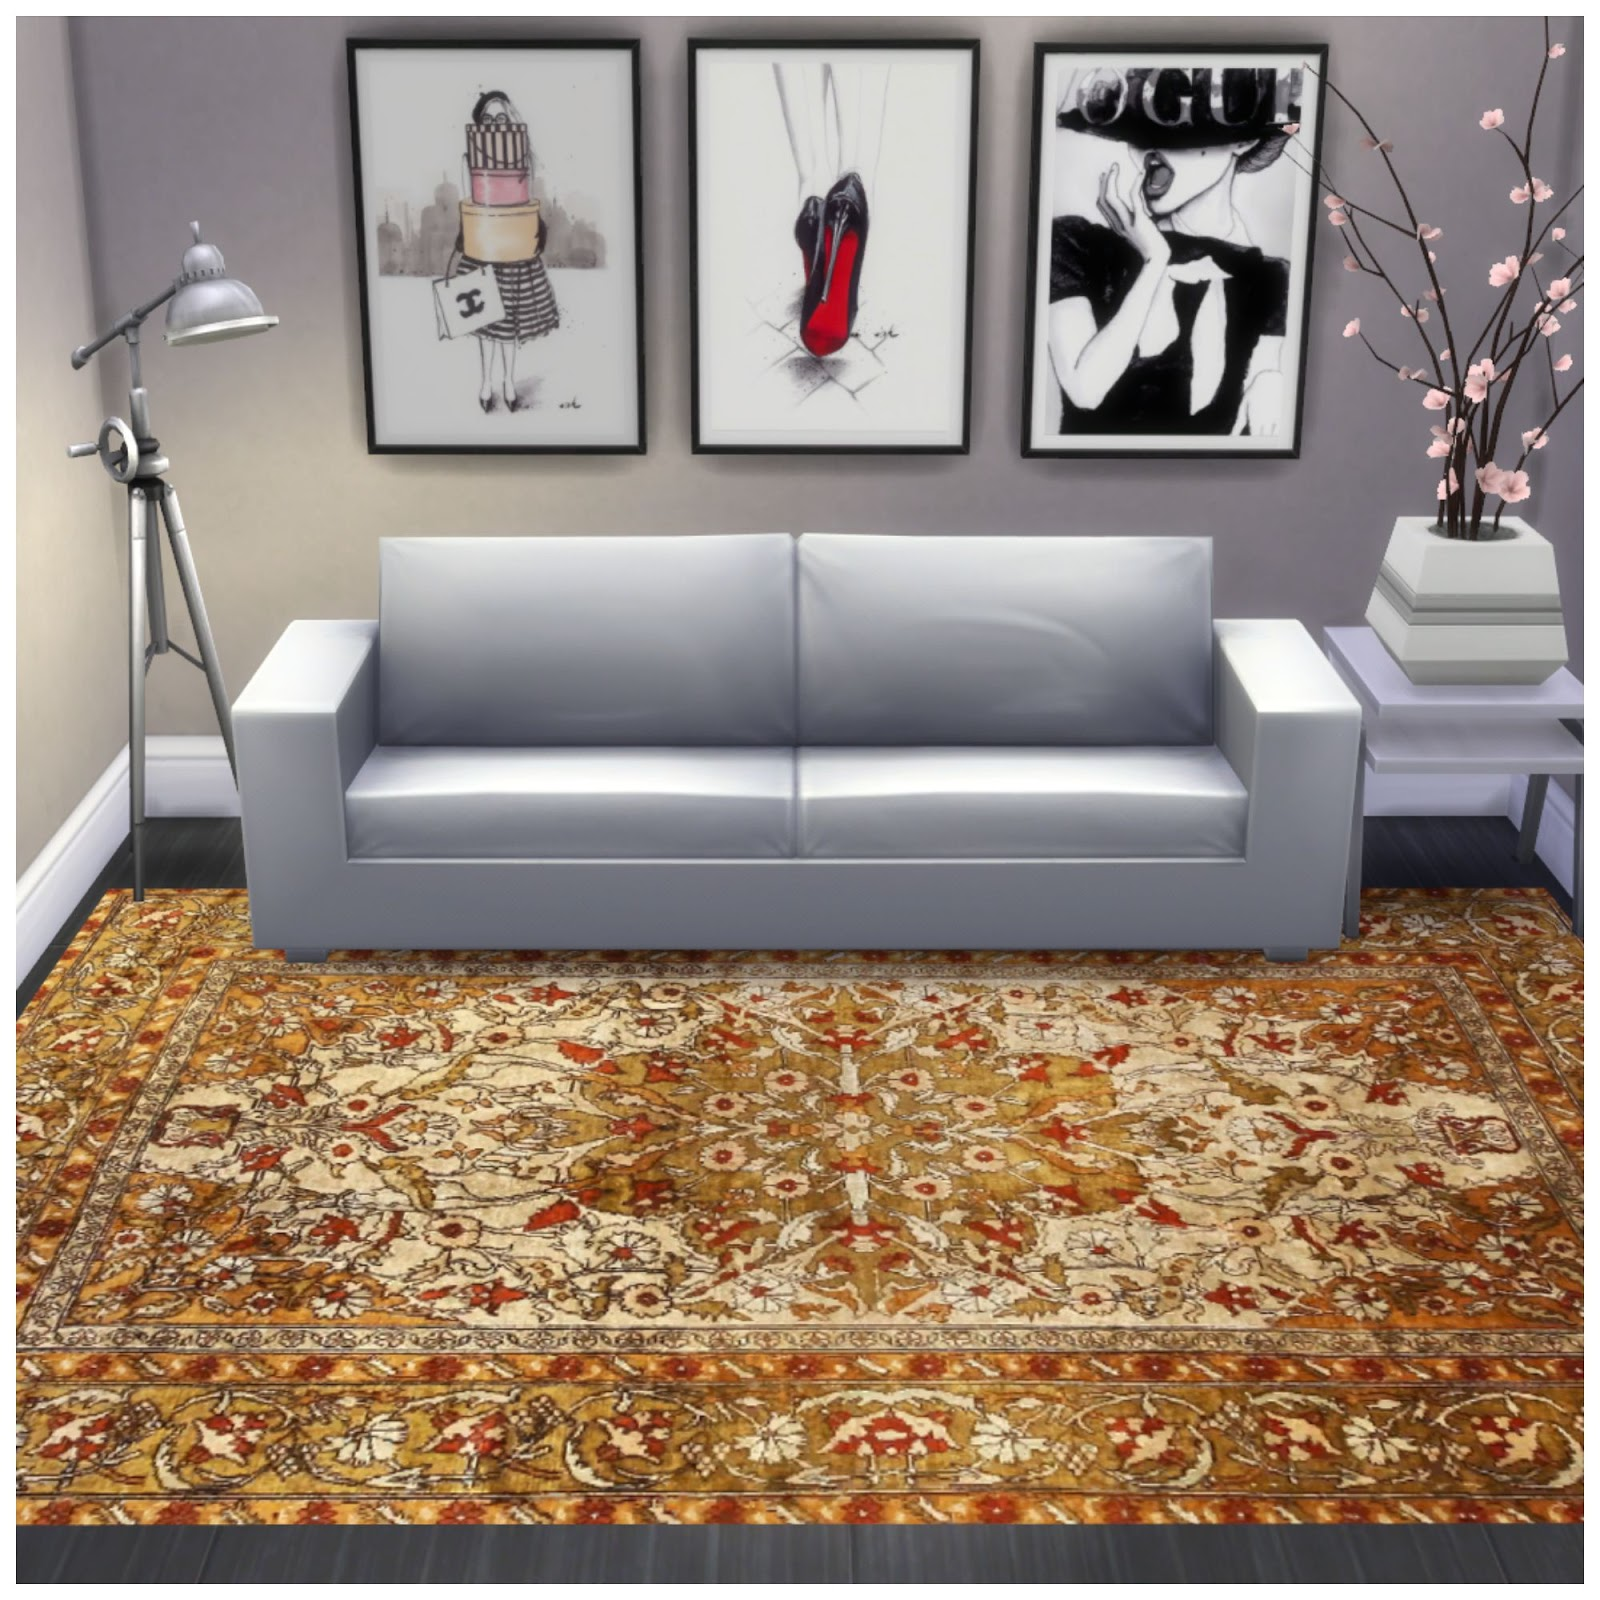 Sims 3 Teppiche Download Sims 4 Cc 39s The Best Rugs By Dinha Gamer